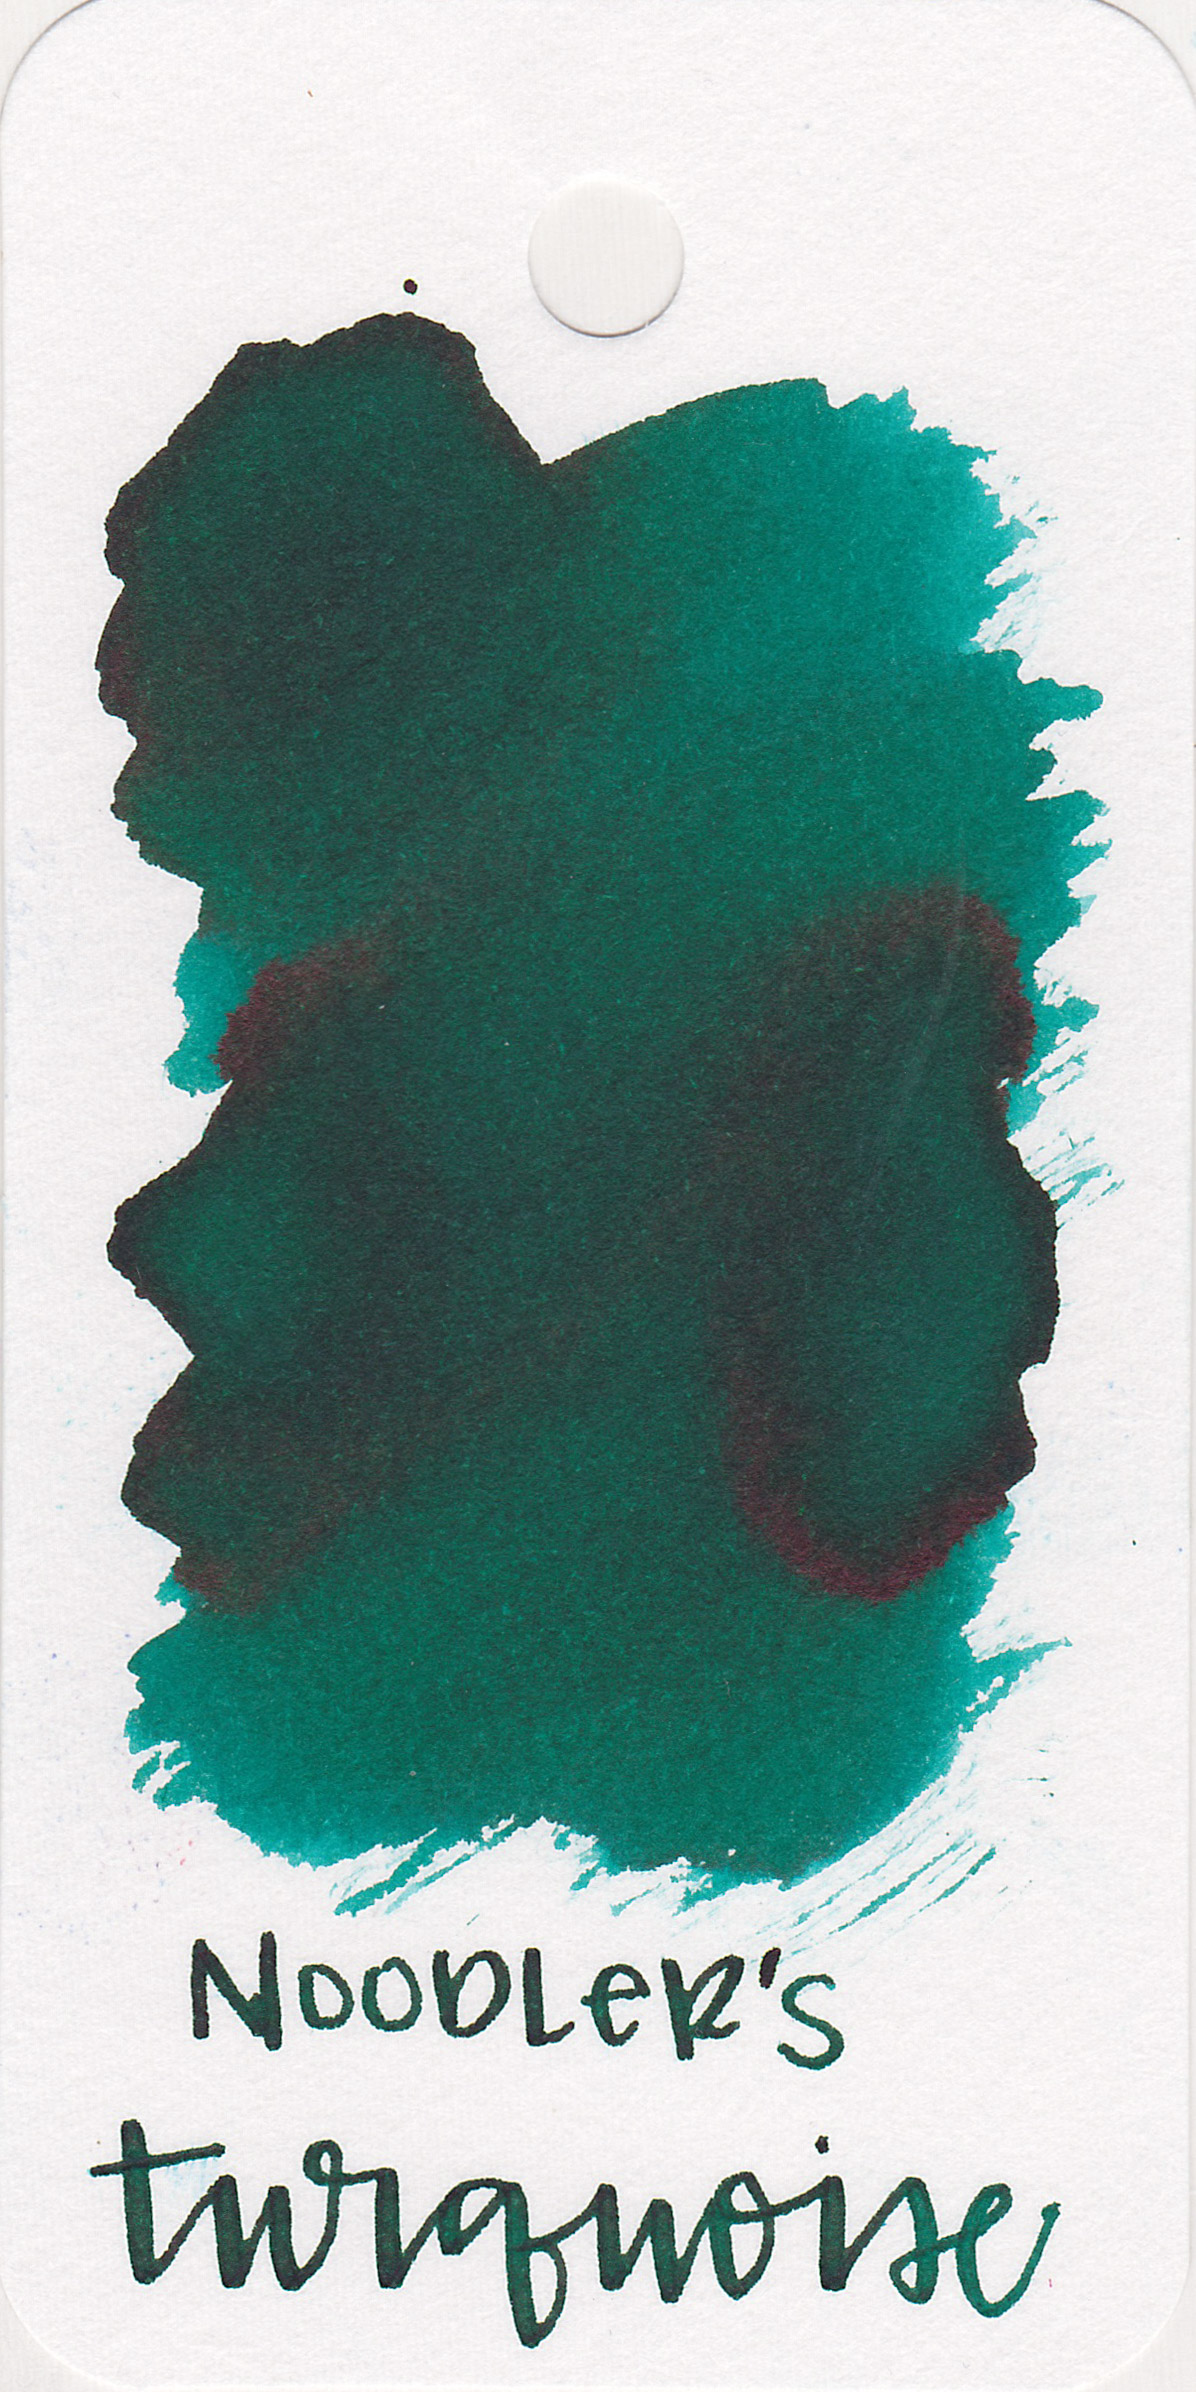 The color: - Turqoise is between blue and green, a bit more on the green side. I'd call it a greenish-teal.